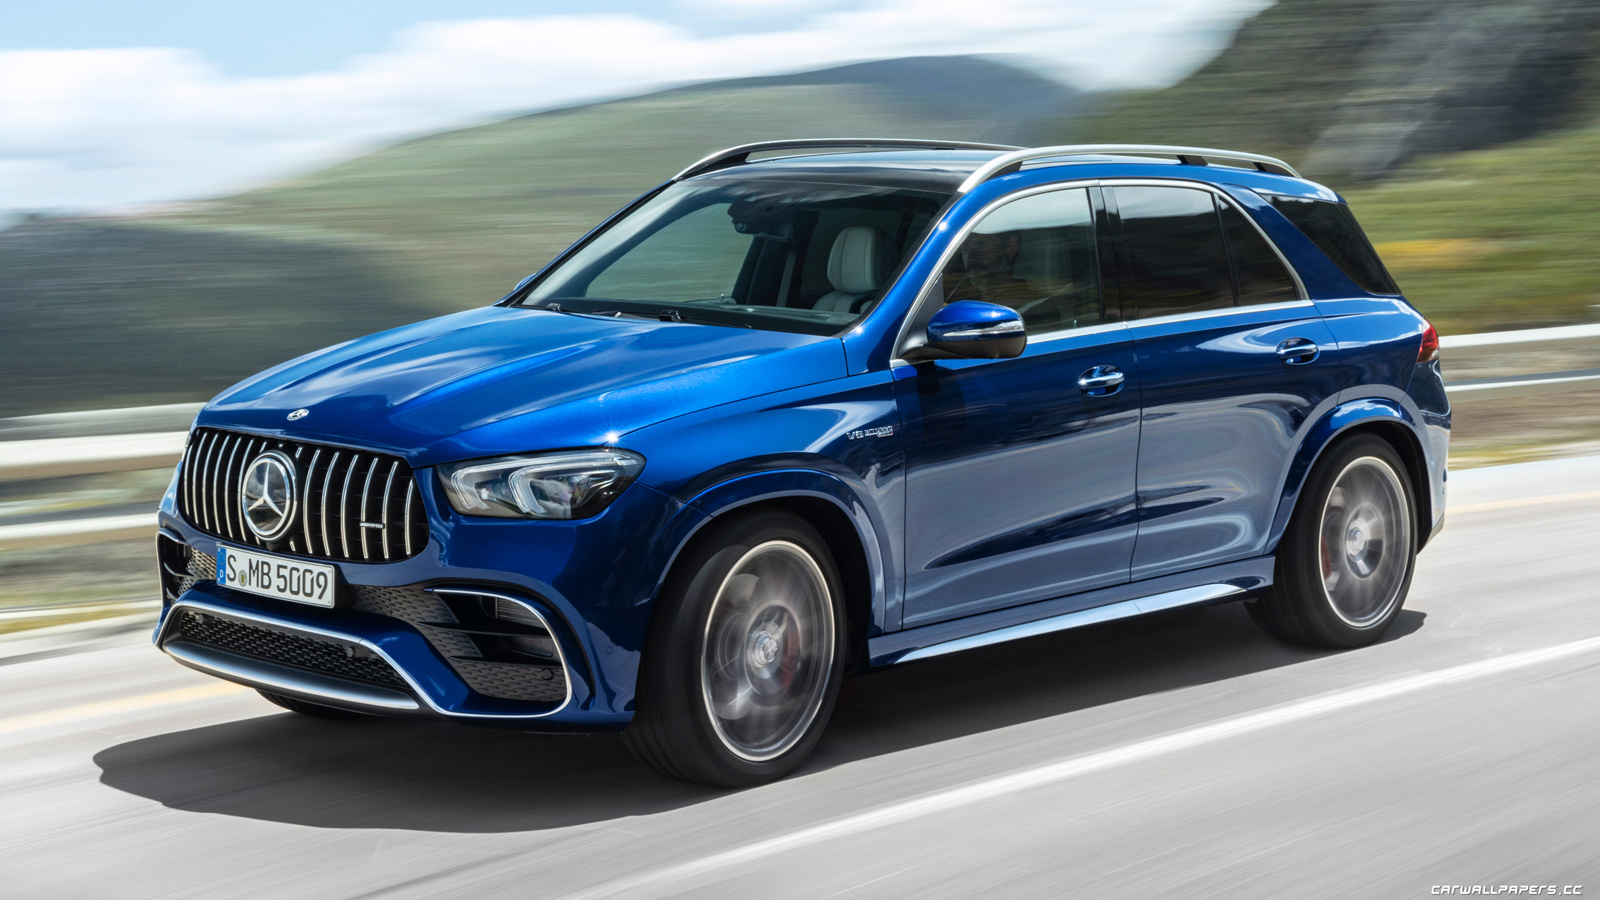 Cars desktop wallpapers Mercedes-AMG GLE 63 S 4MATIC ...